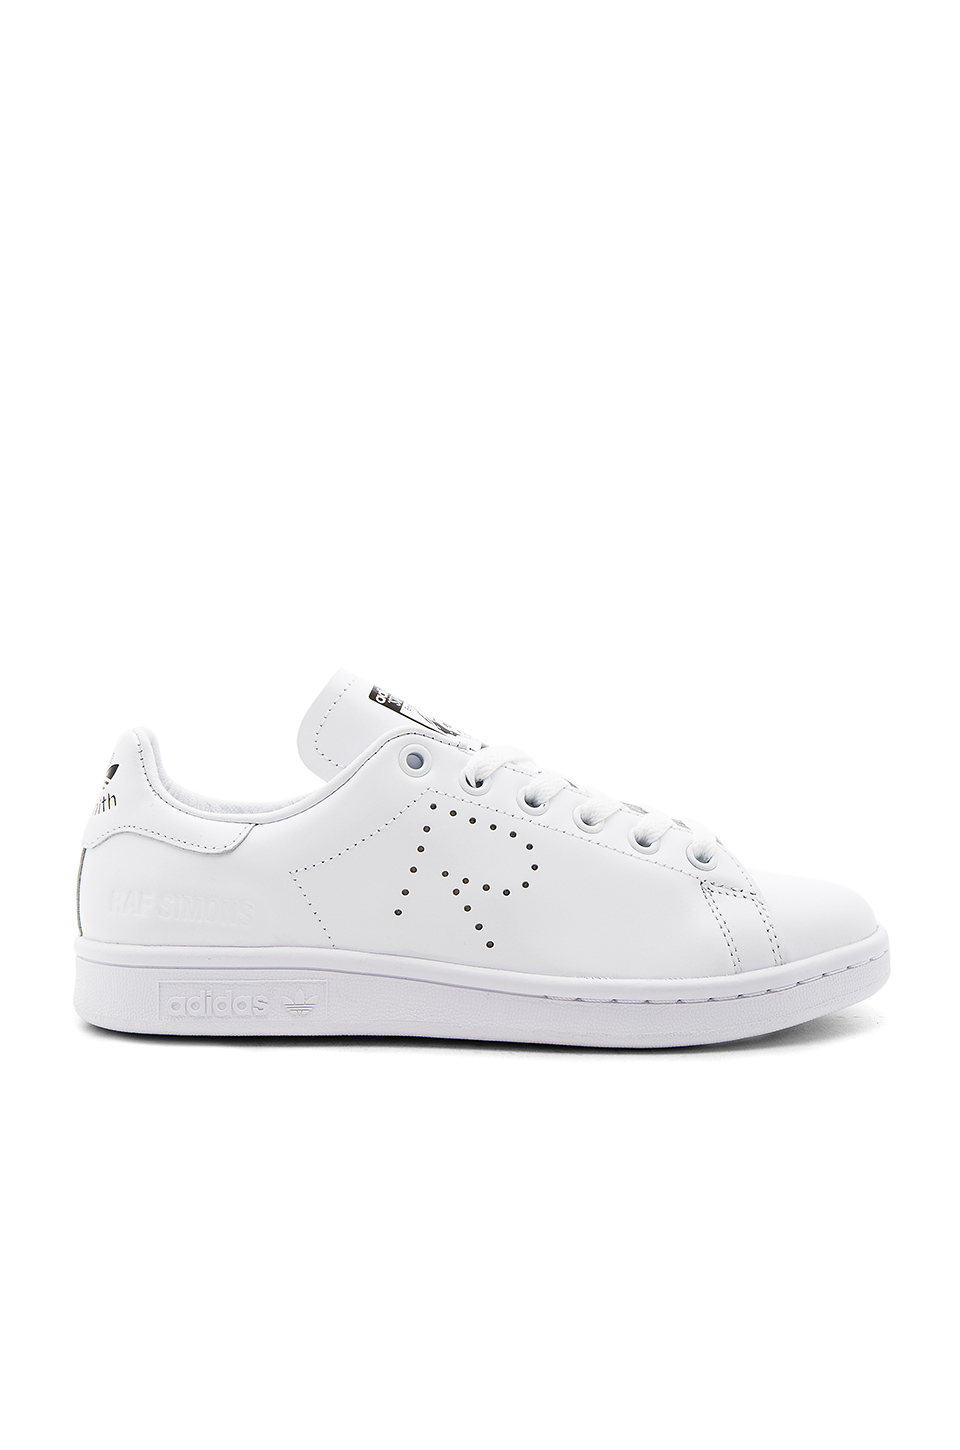 adidas by Raf Simons RS Stan Smith Lace Up Sneaker in White & Black